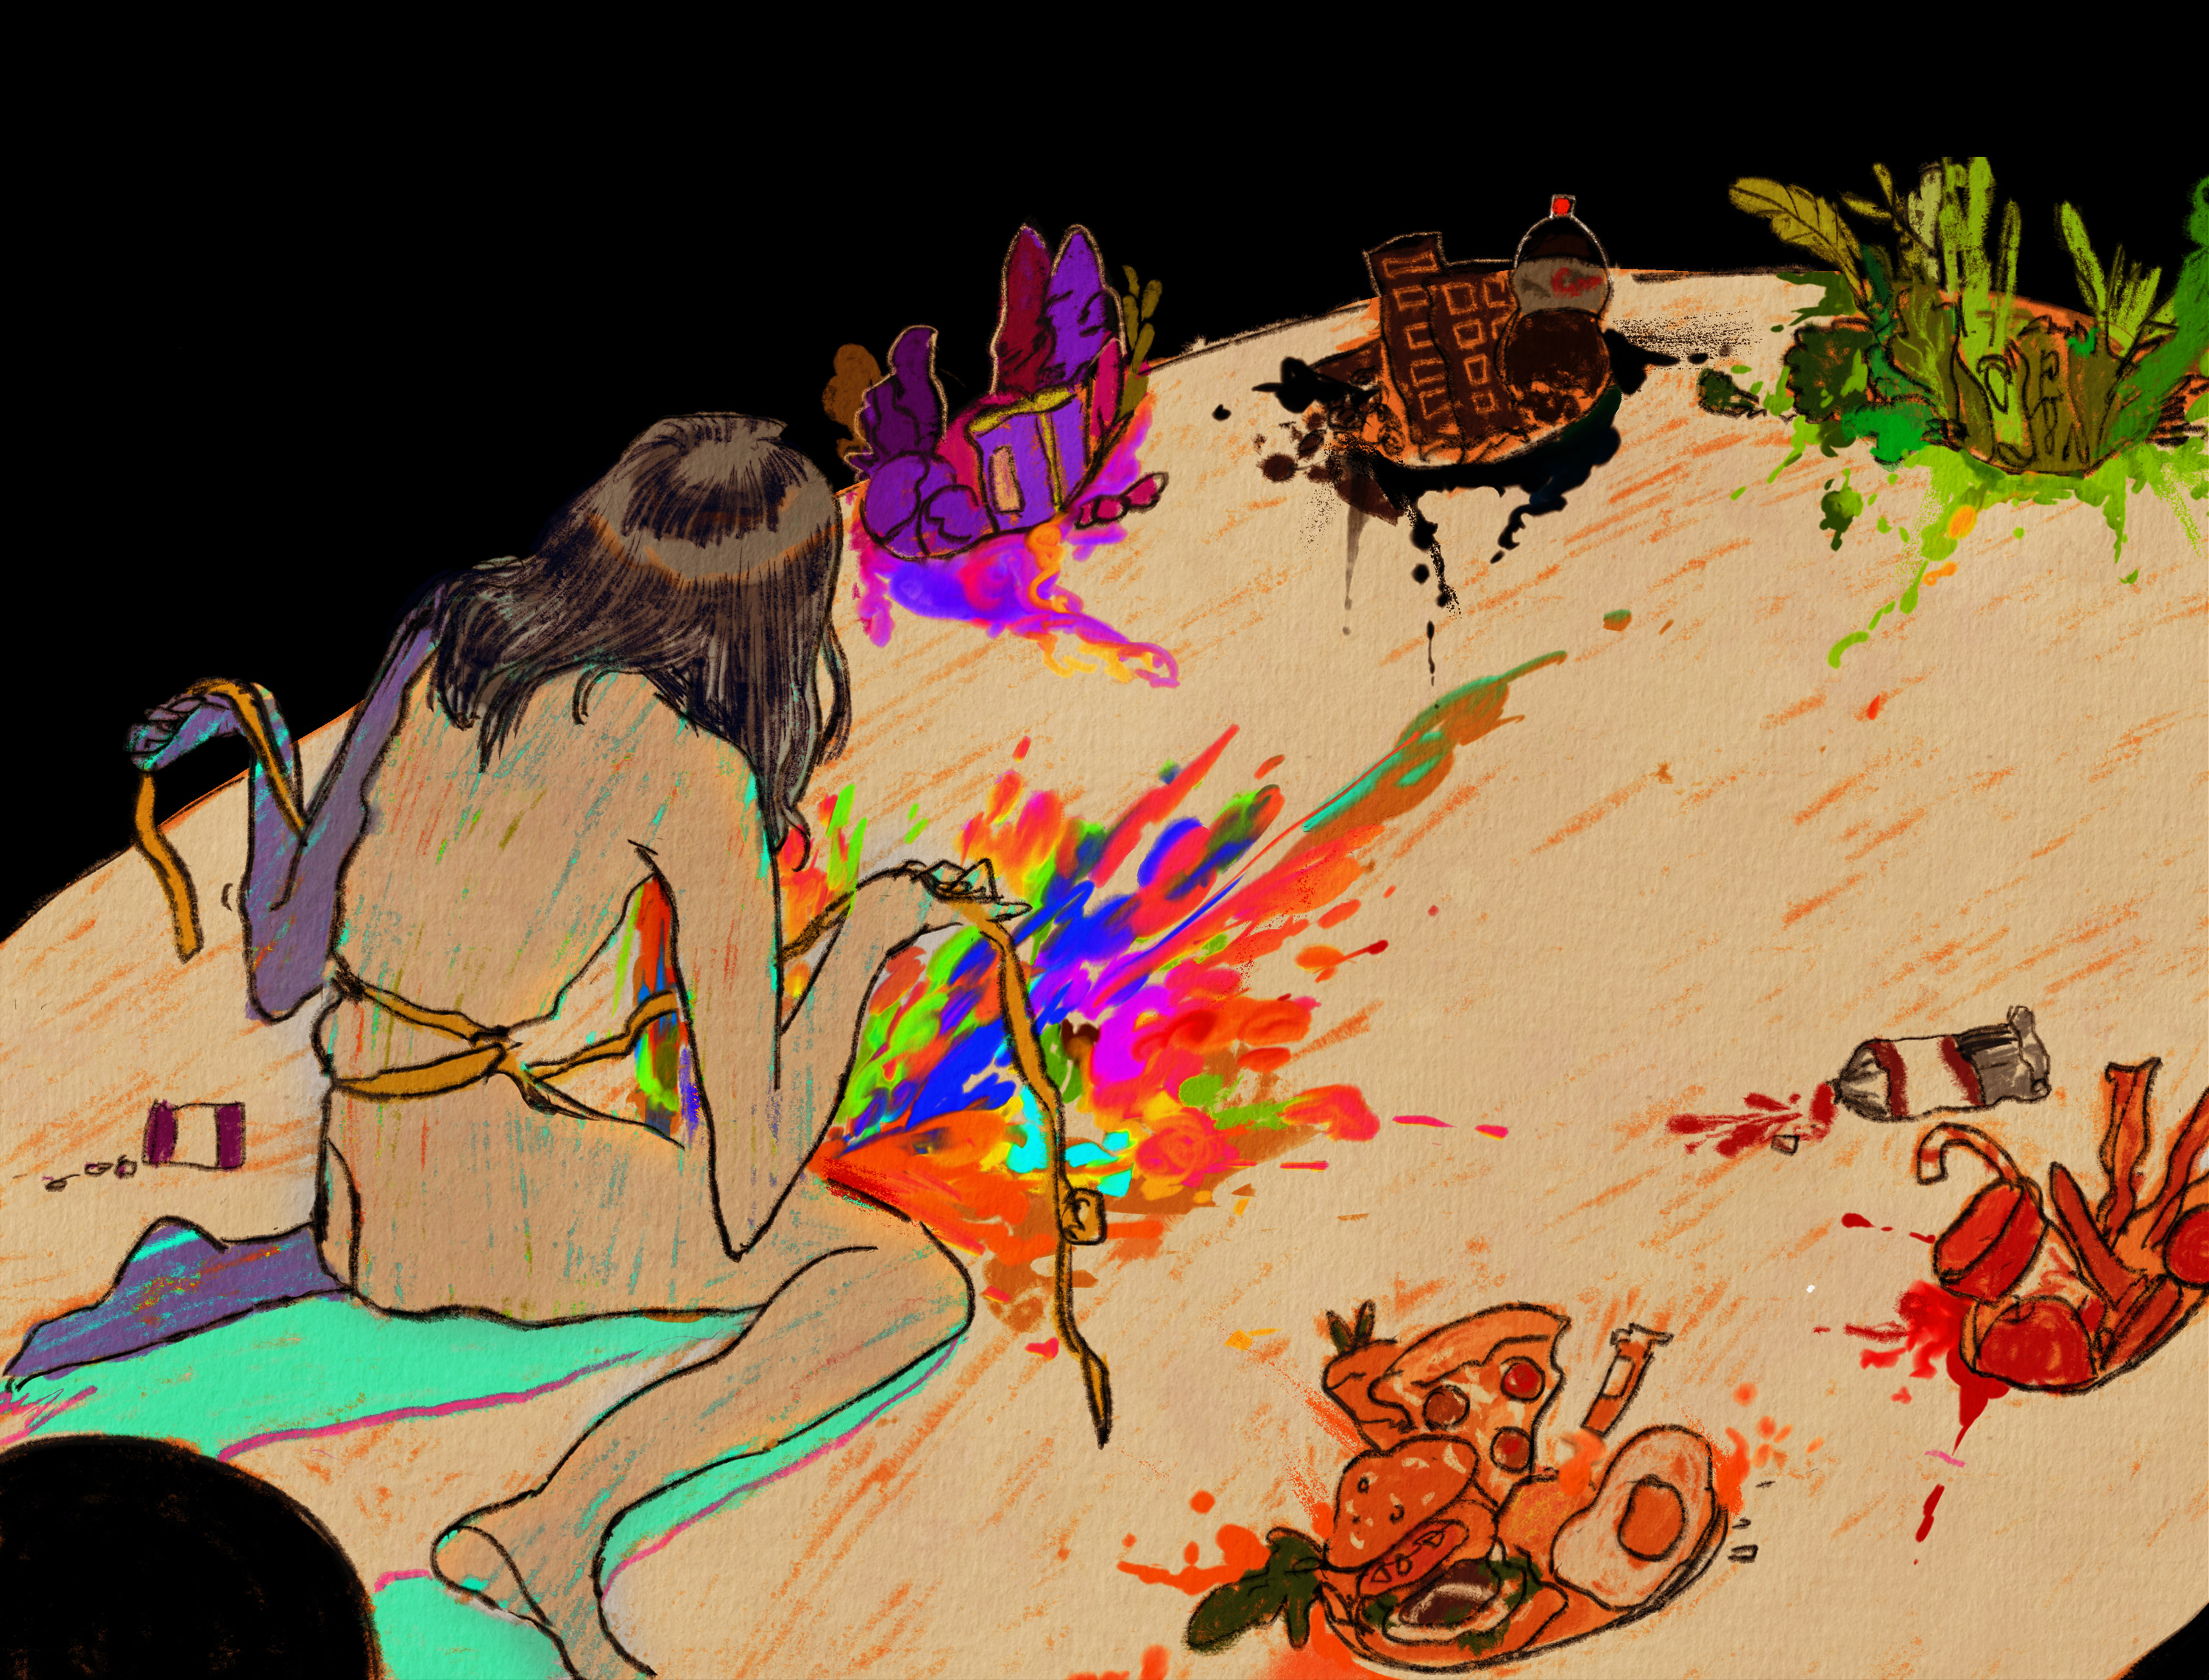 A female figure sit on a color palette filled with colorful foods, strangling her waist with a rope measure and vomiting the pigments out